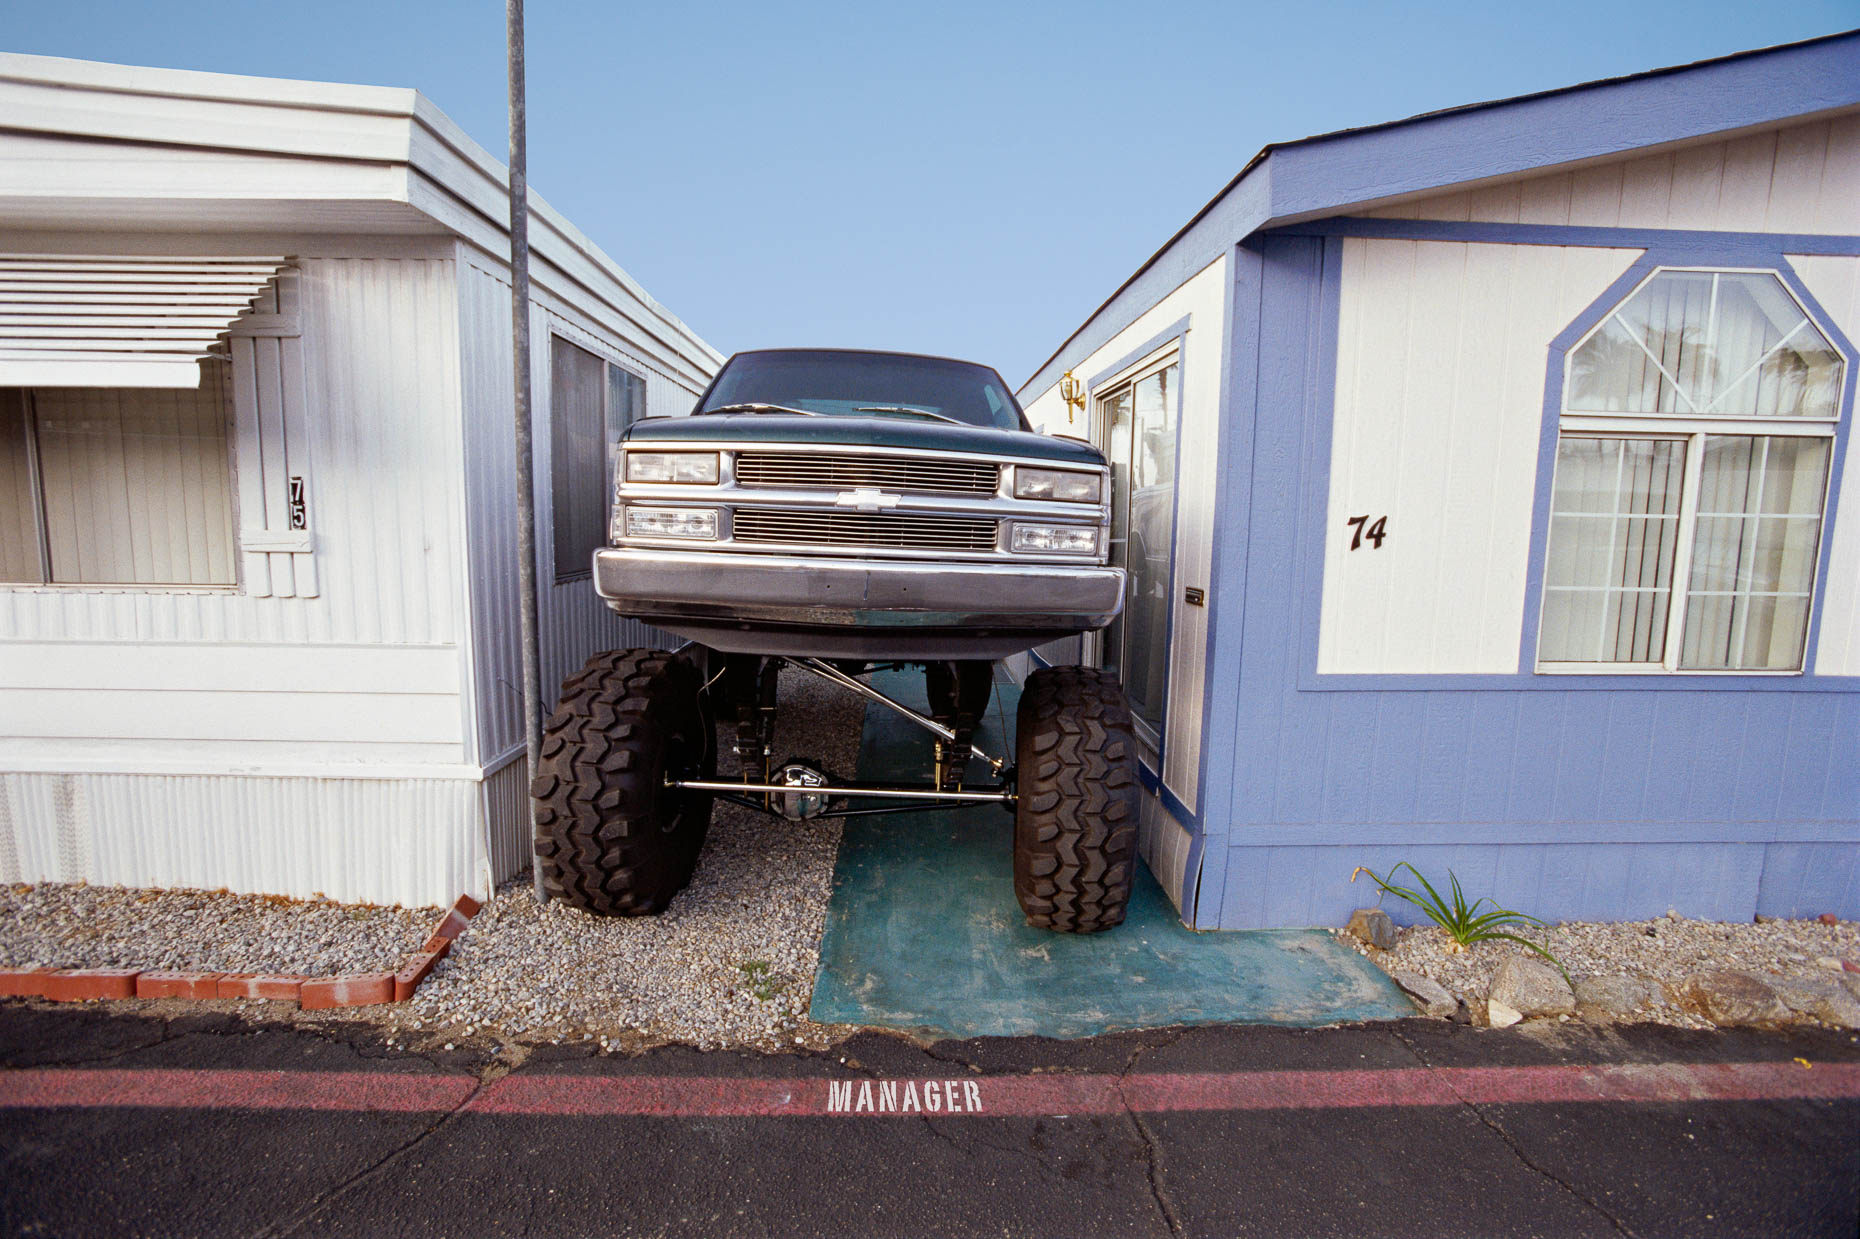 Large pickup truck parked between two mobile homes in a tight squeeze with MANAGER painted on pavement by David Zaitz